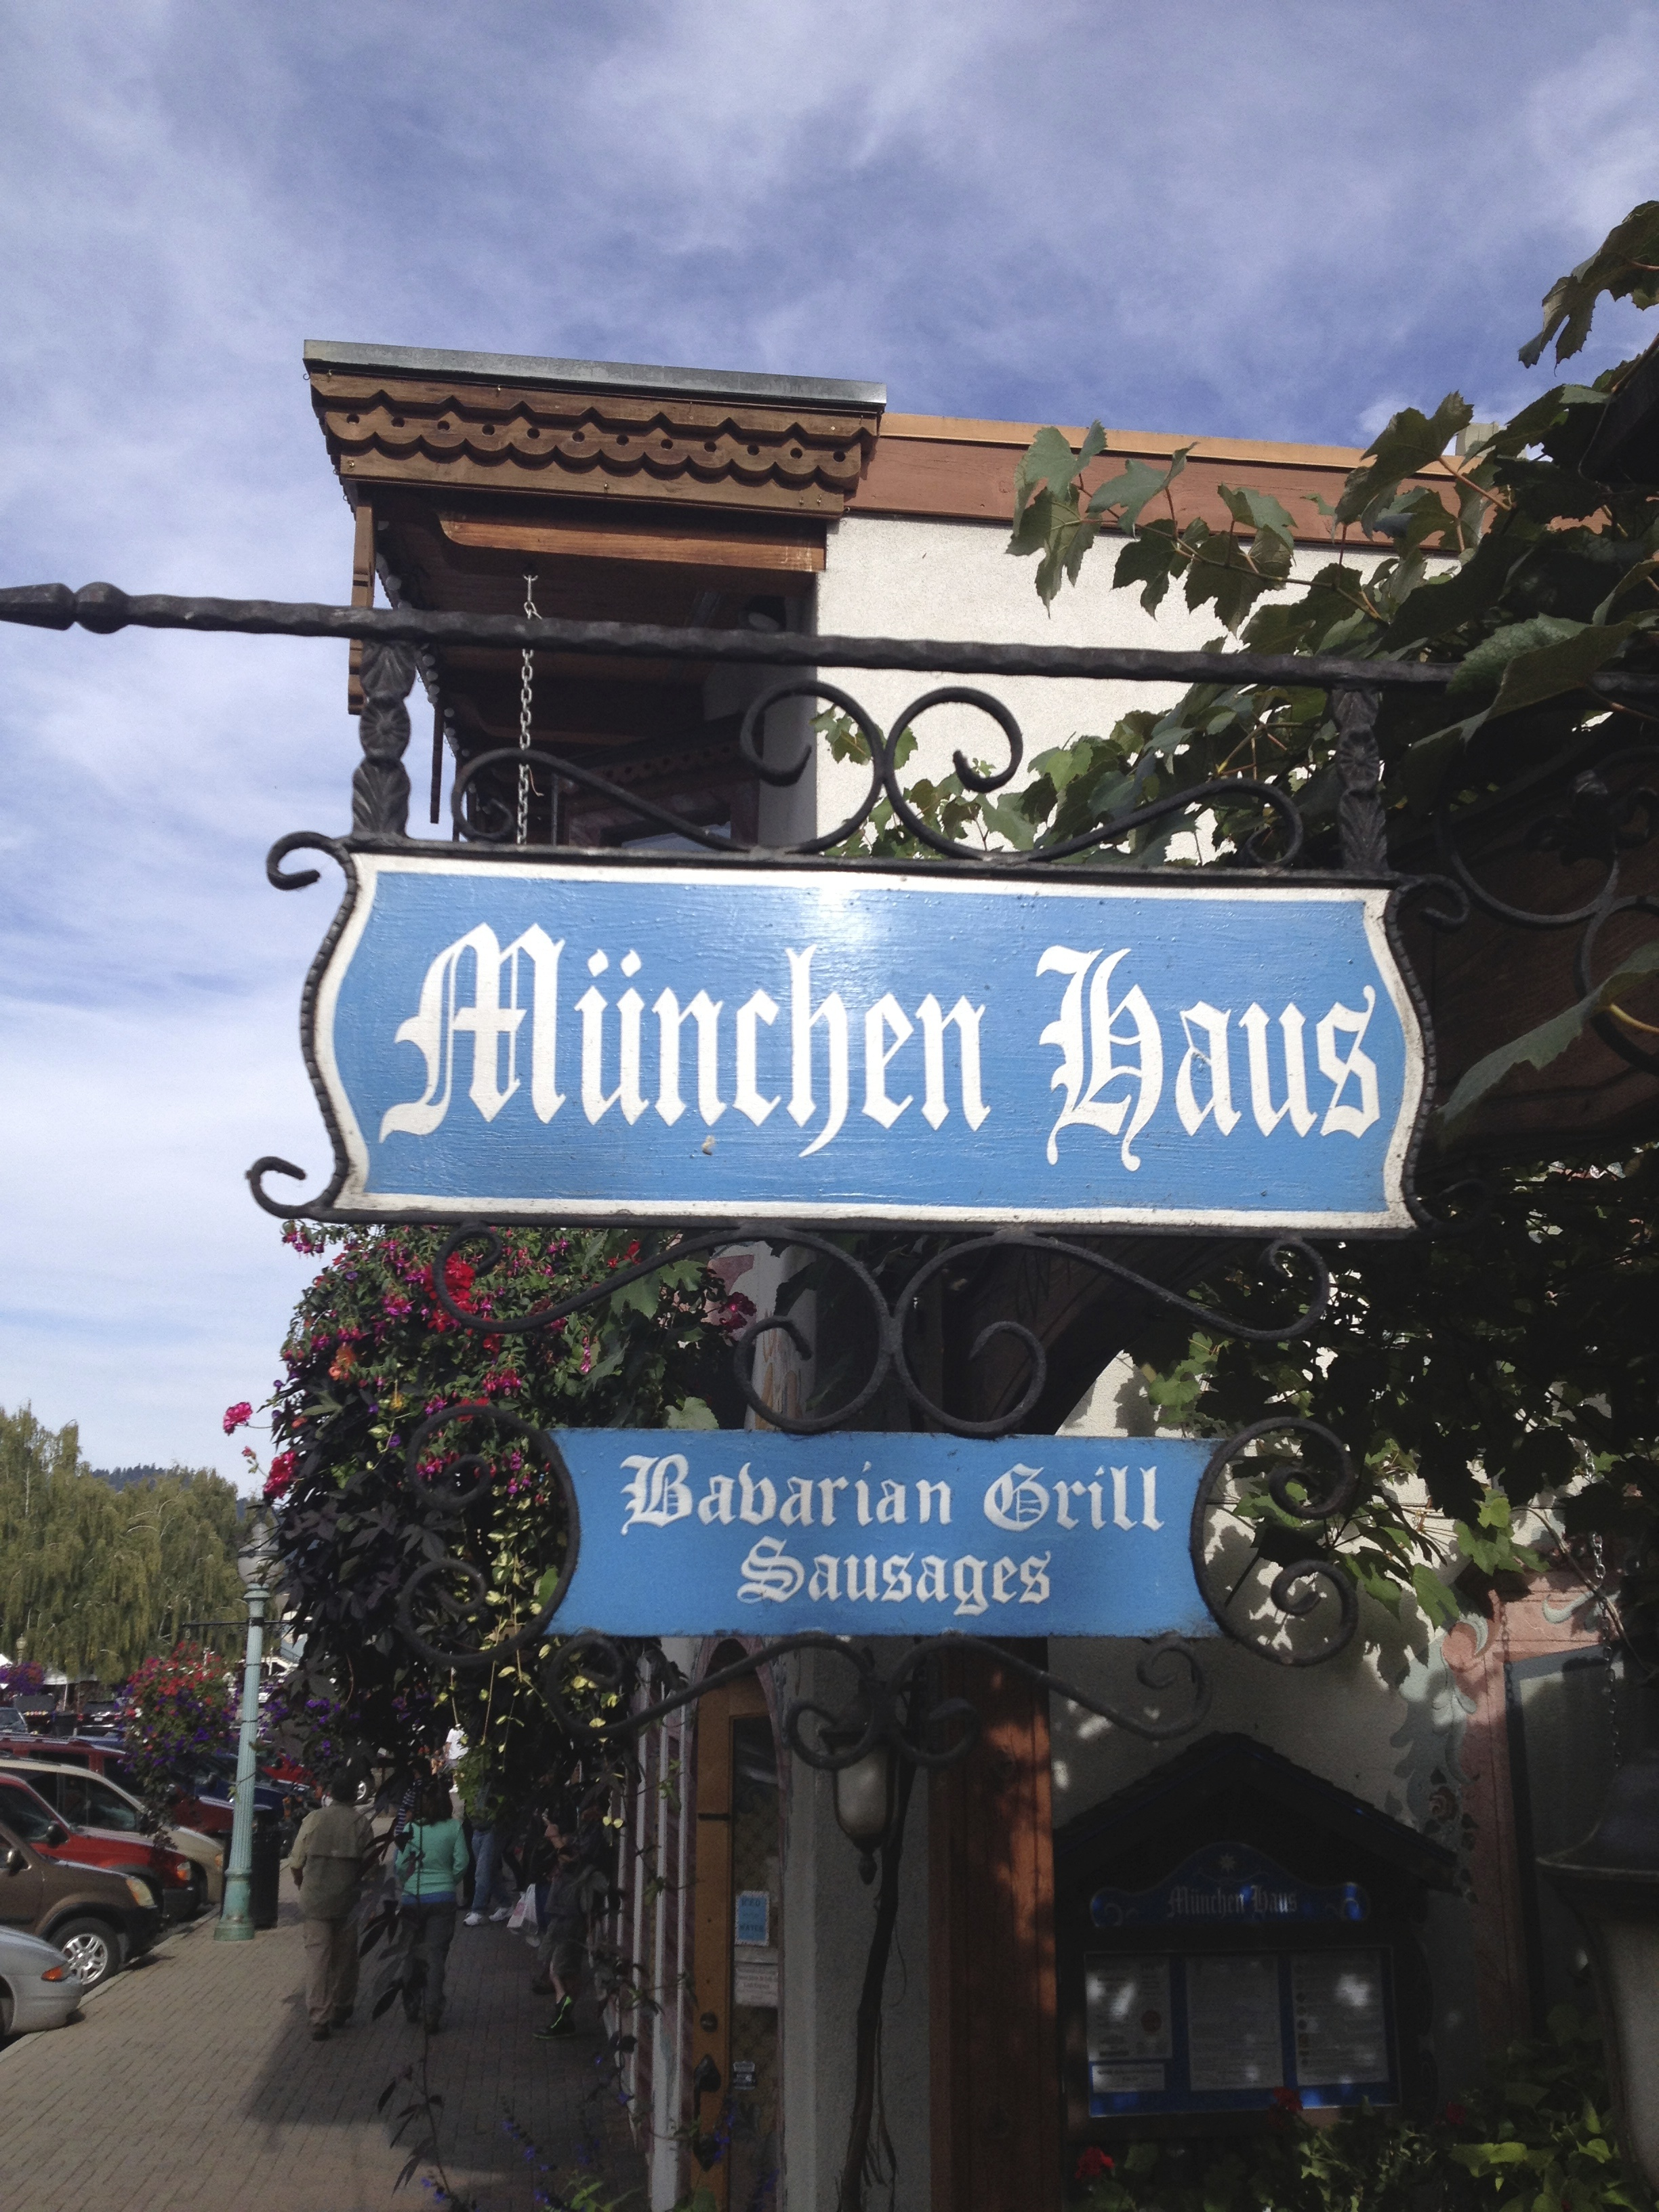 The bratwurst at the München Haus In Leavenworth are excellent.